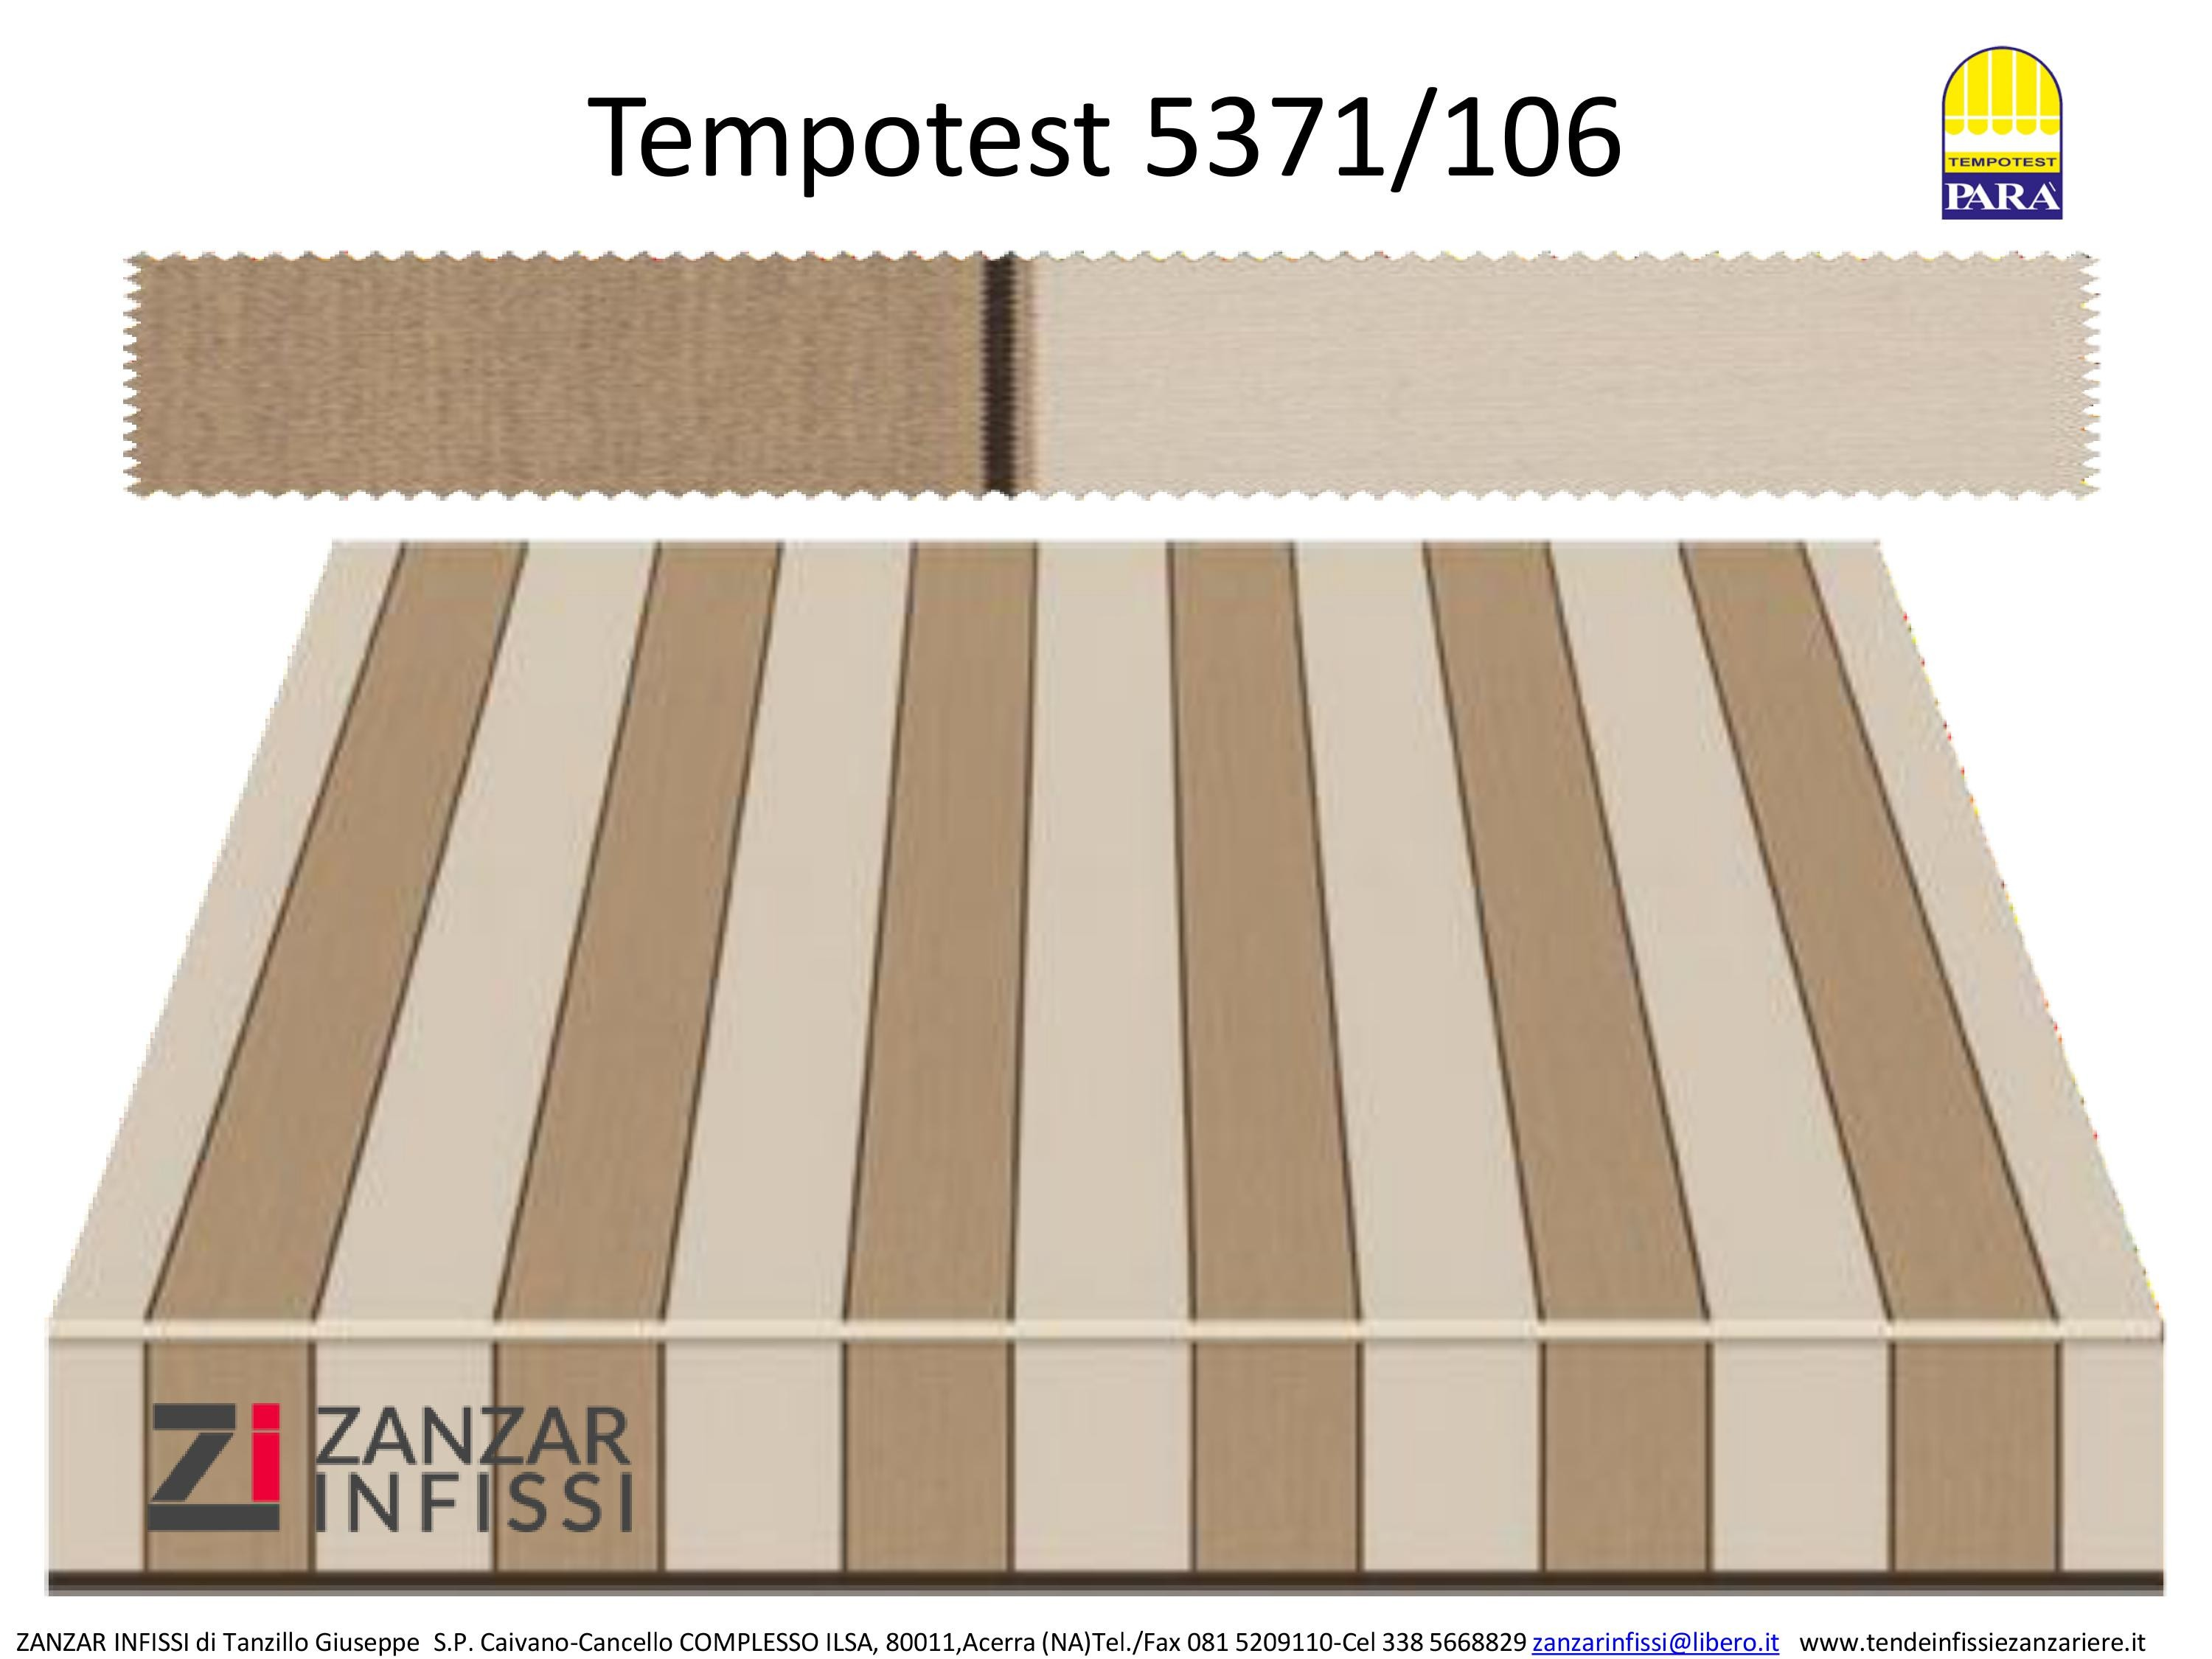 Tempotest 5371/106